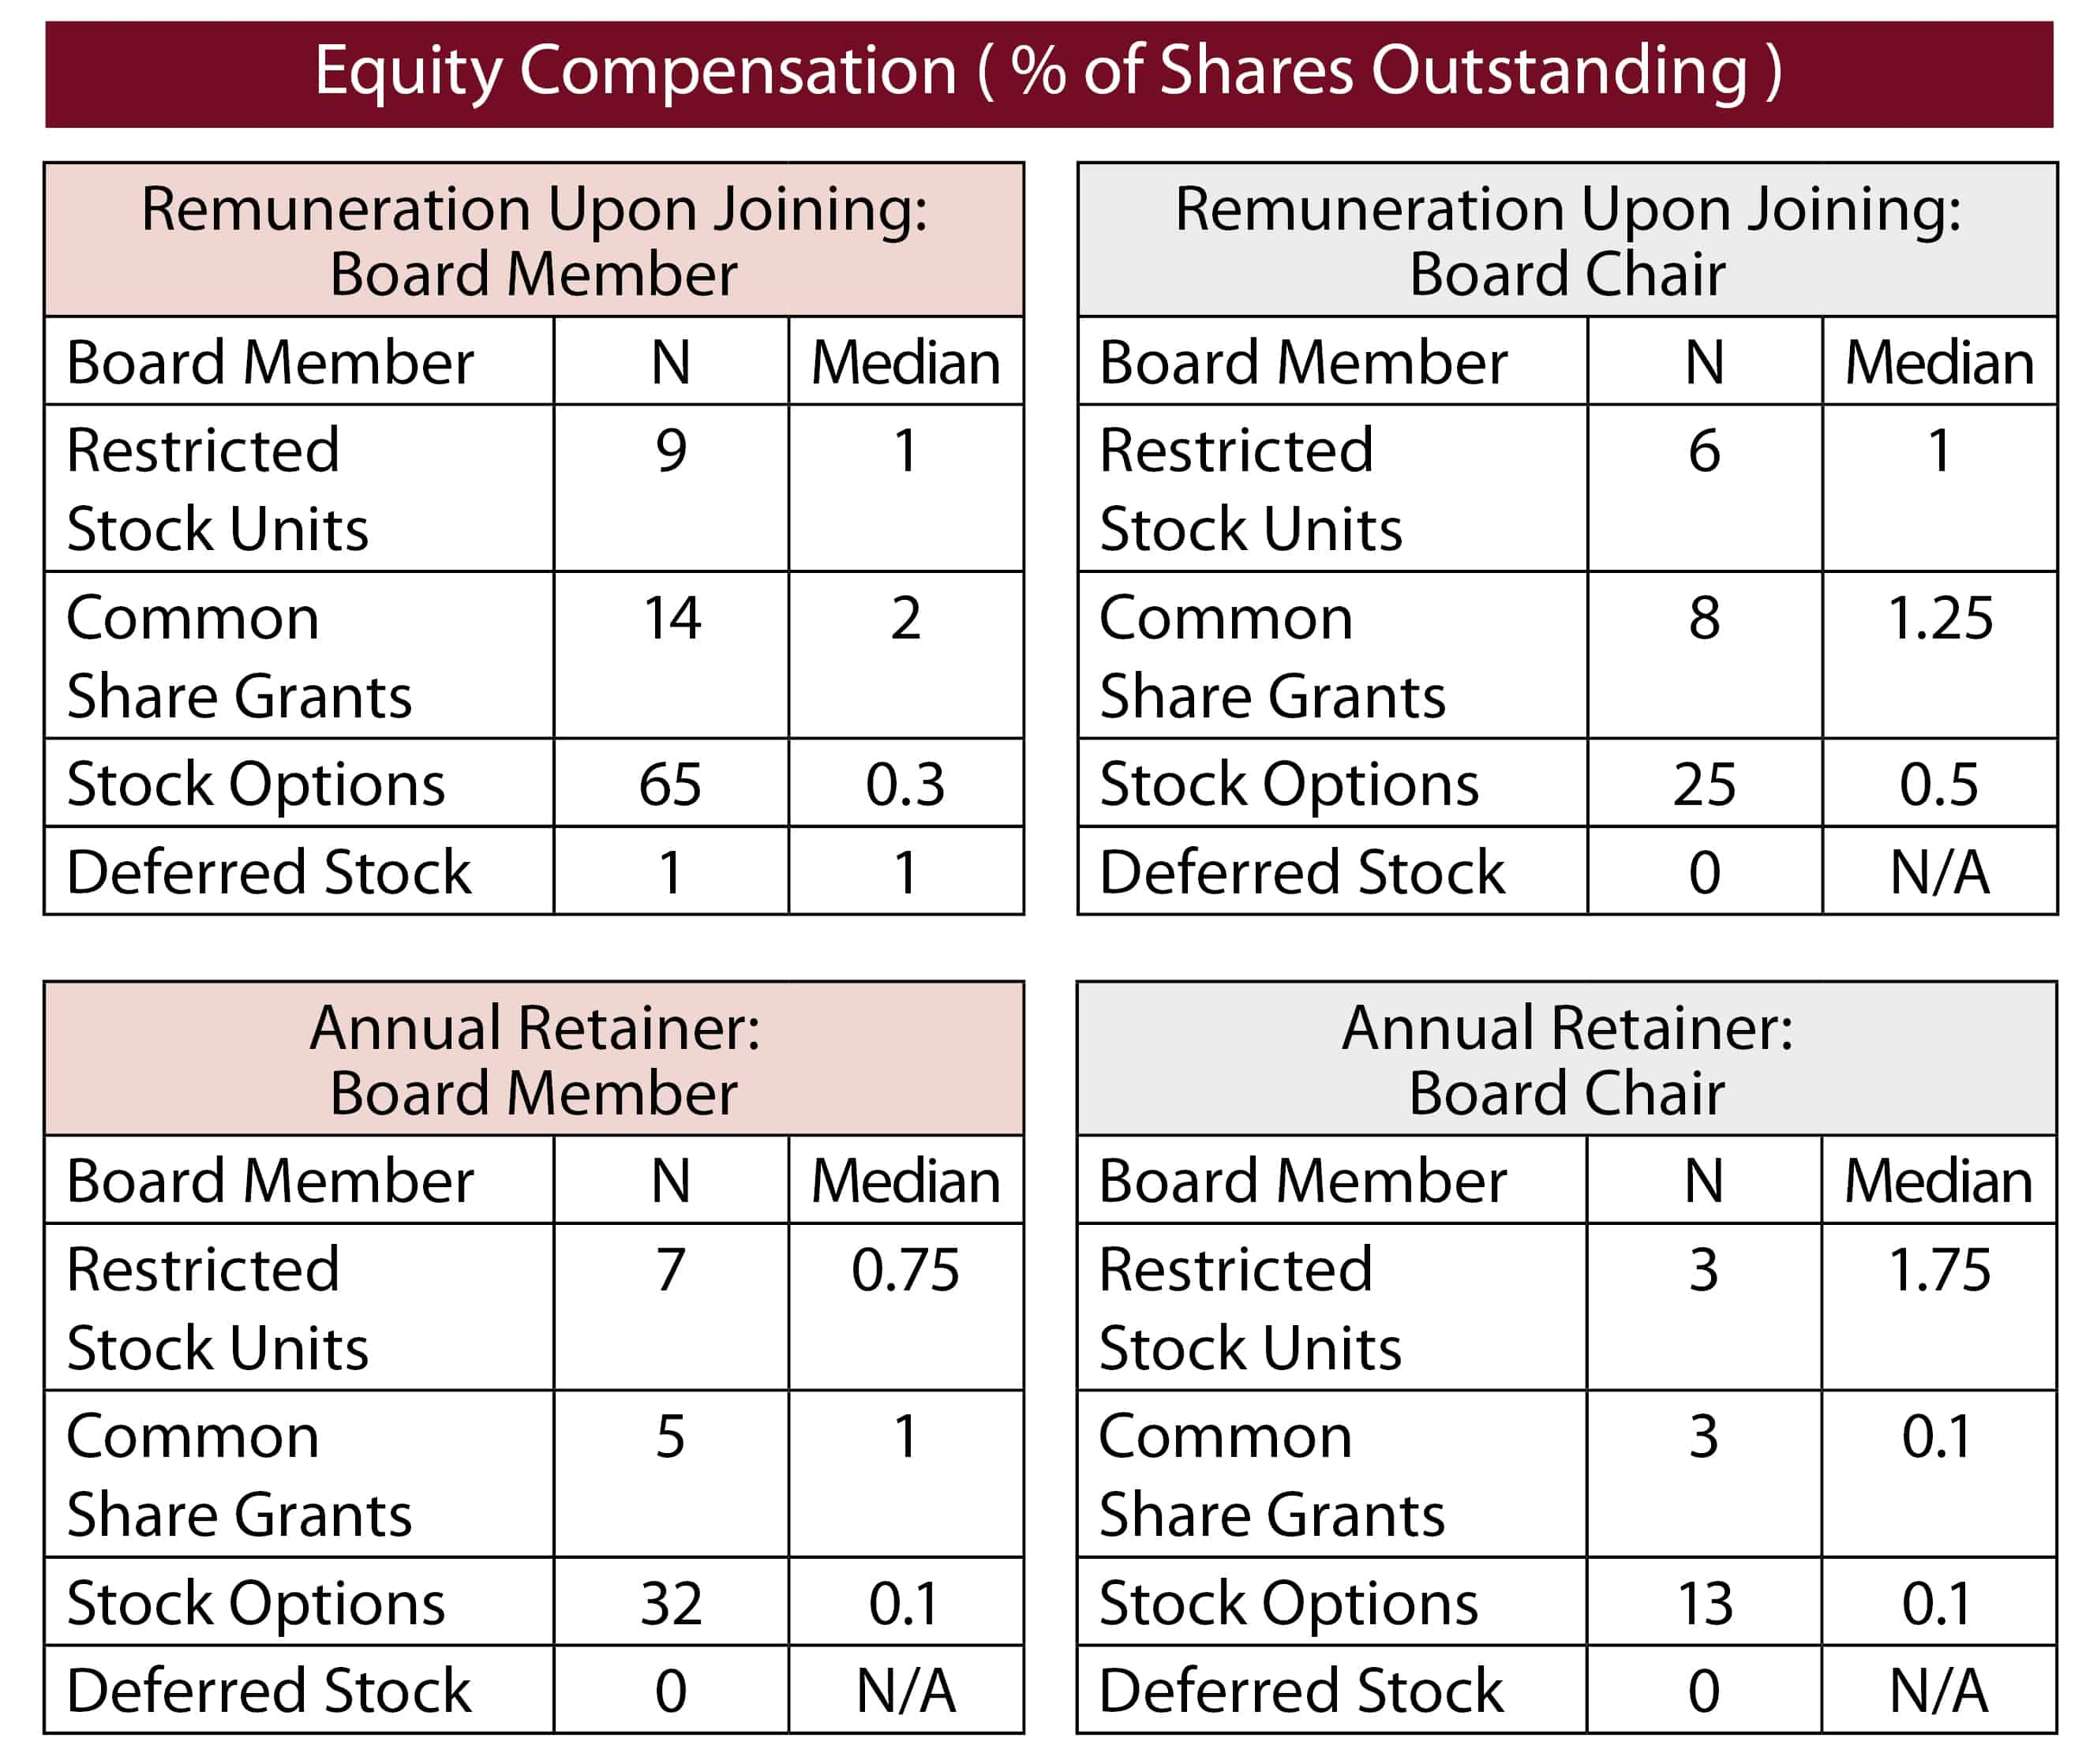 Equity Compensation (% of Shares Outstanding)